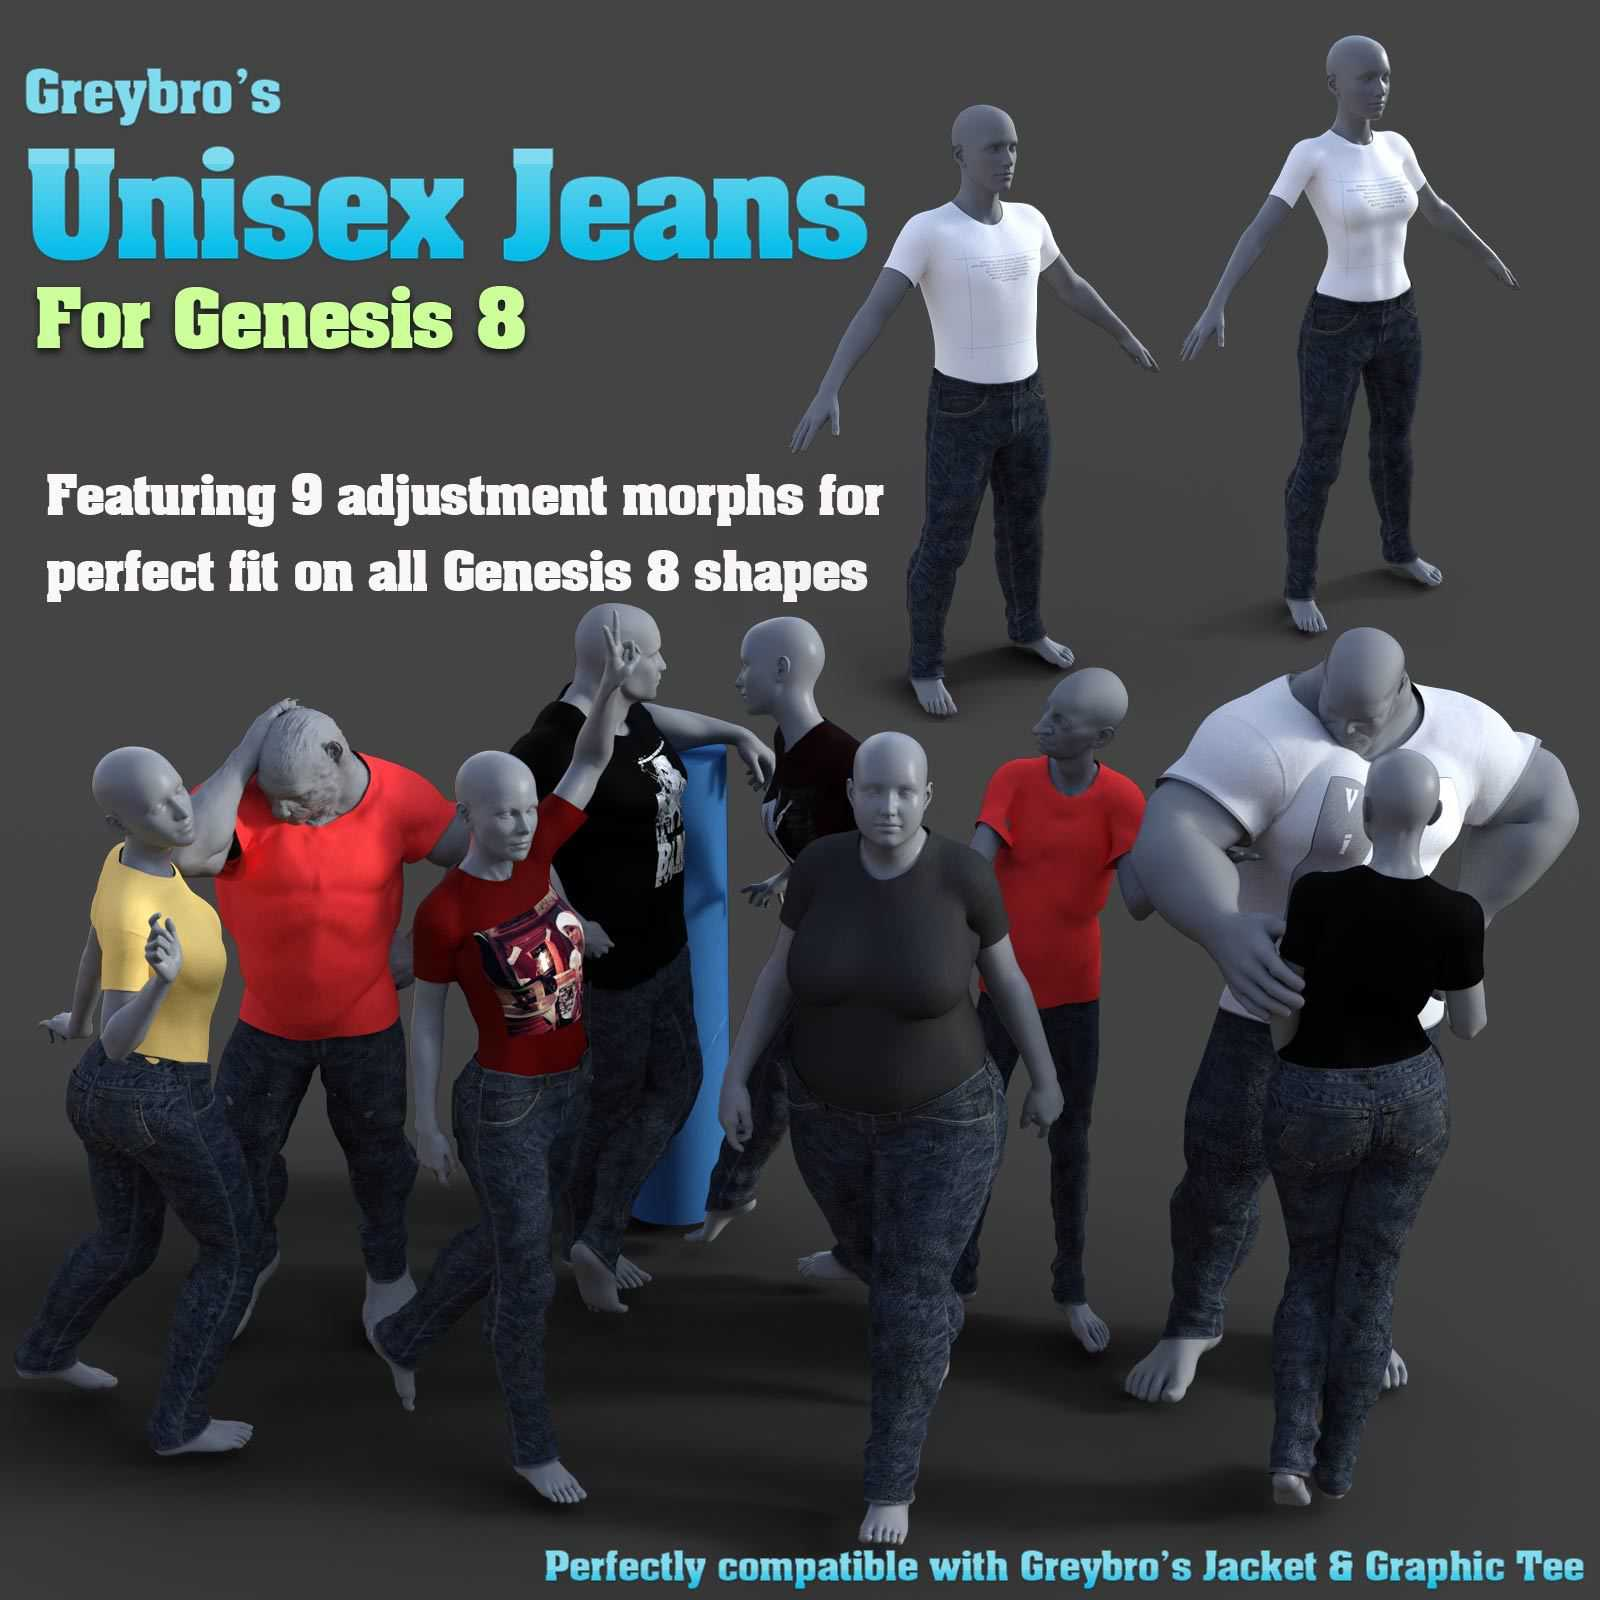 Greybro's Unisex Jeans for G8